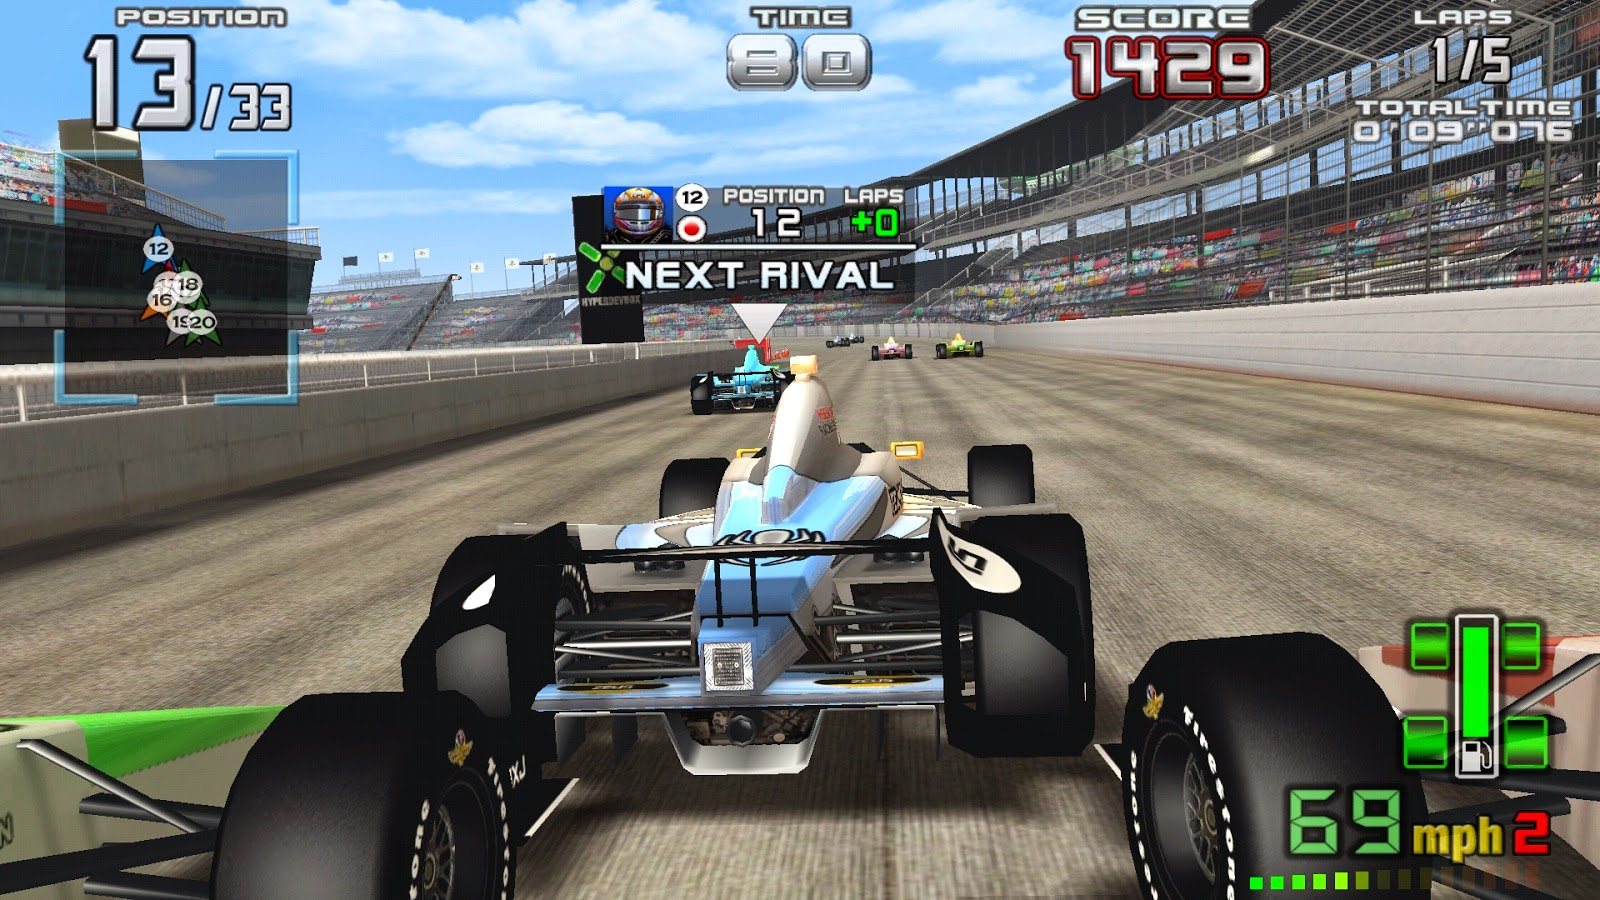 Free Wallpaper For Galaxy S4 Cars Dodge Download Indy 500 Arcade Racing V1 53 Apk Obb Android